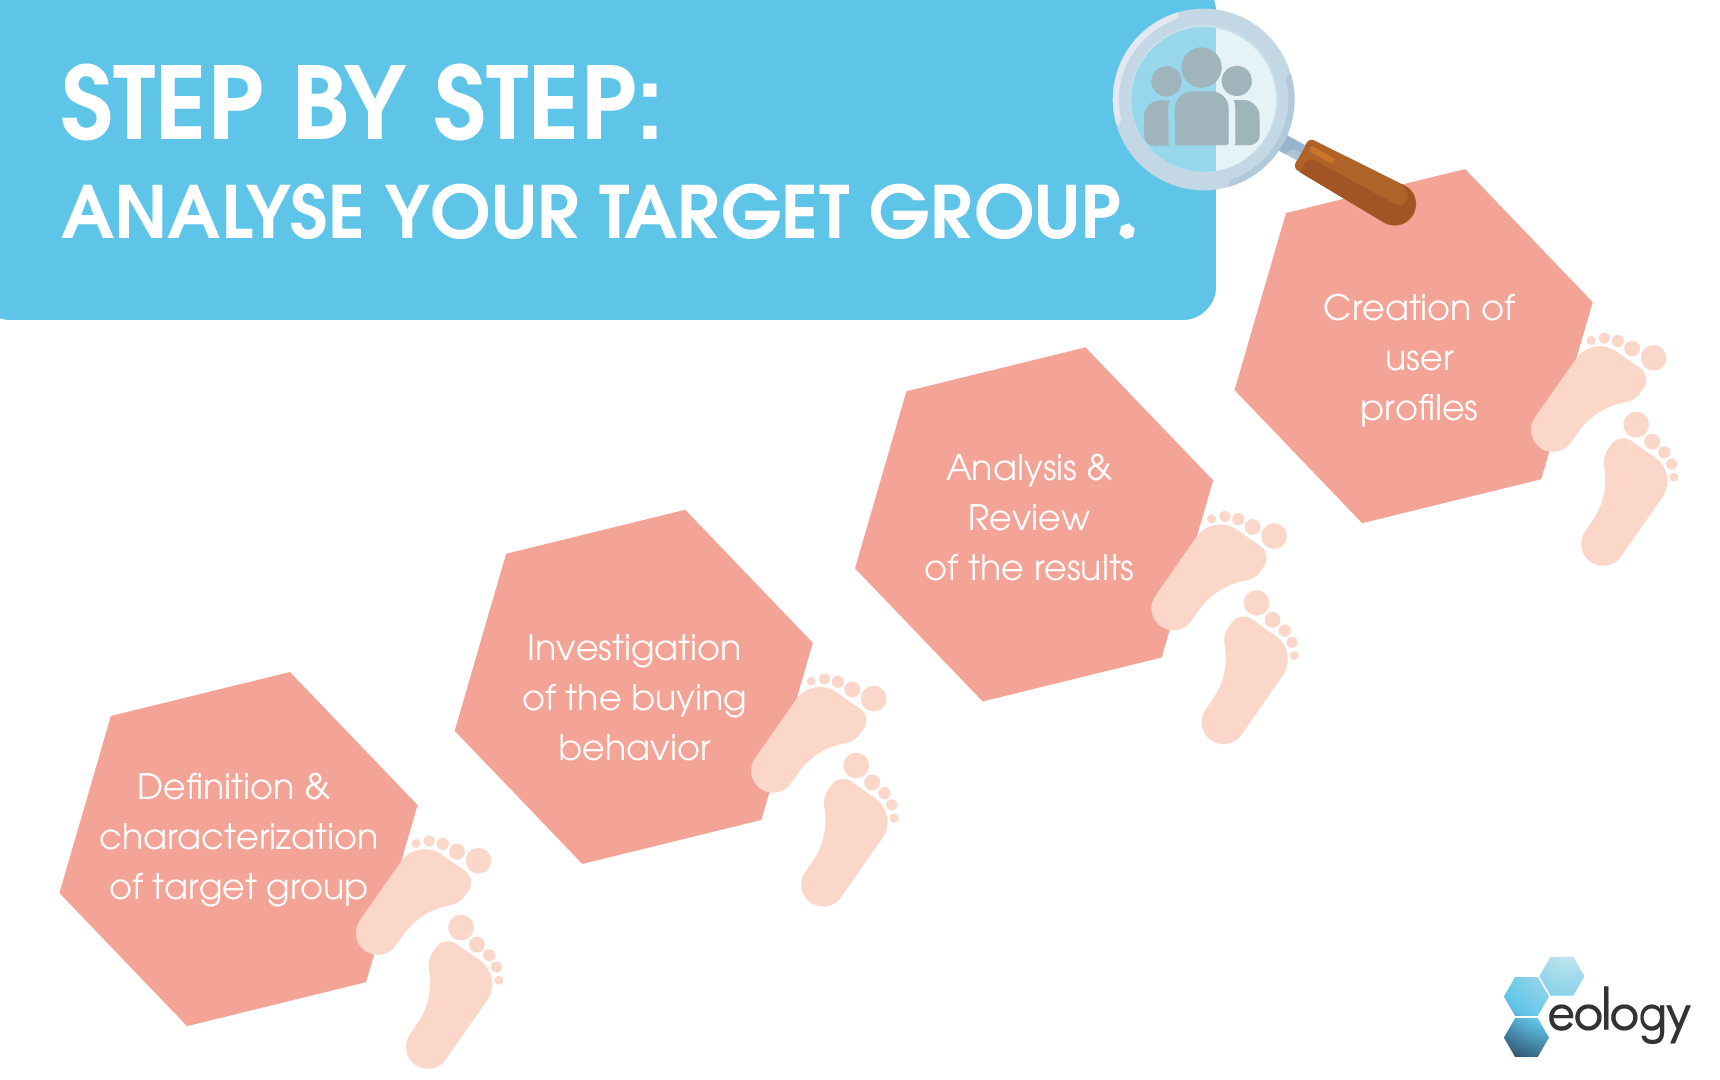 The picture shows the four steps of a target group analysis. These must be analyzed in order to draw accurate conclusions about one's own target group. The first step is therefore to define and characterize the target group. The next step is to examine the buying behavior, after which these results must be analyzed and checked again in detail. In the last step, user profiles are created and the target group analysis is finished.